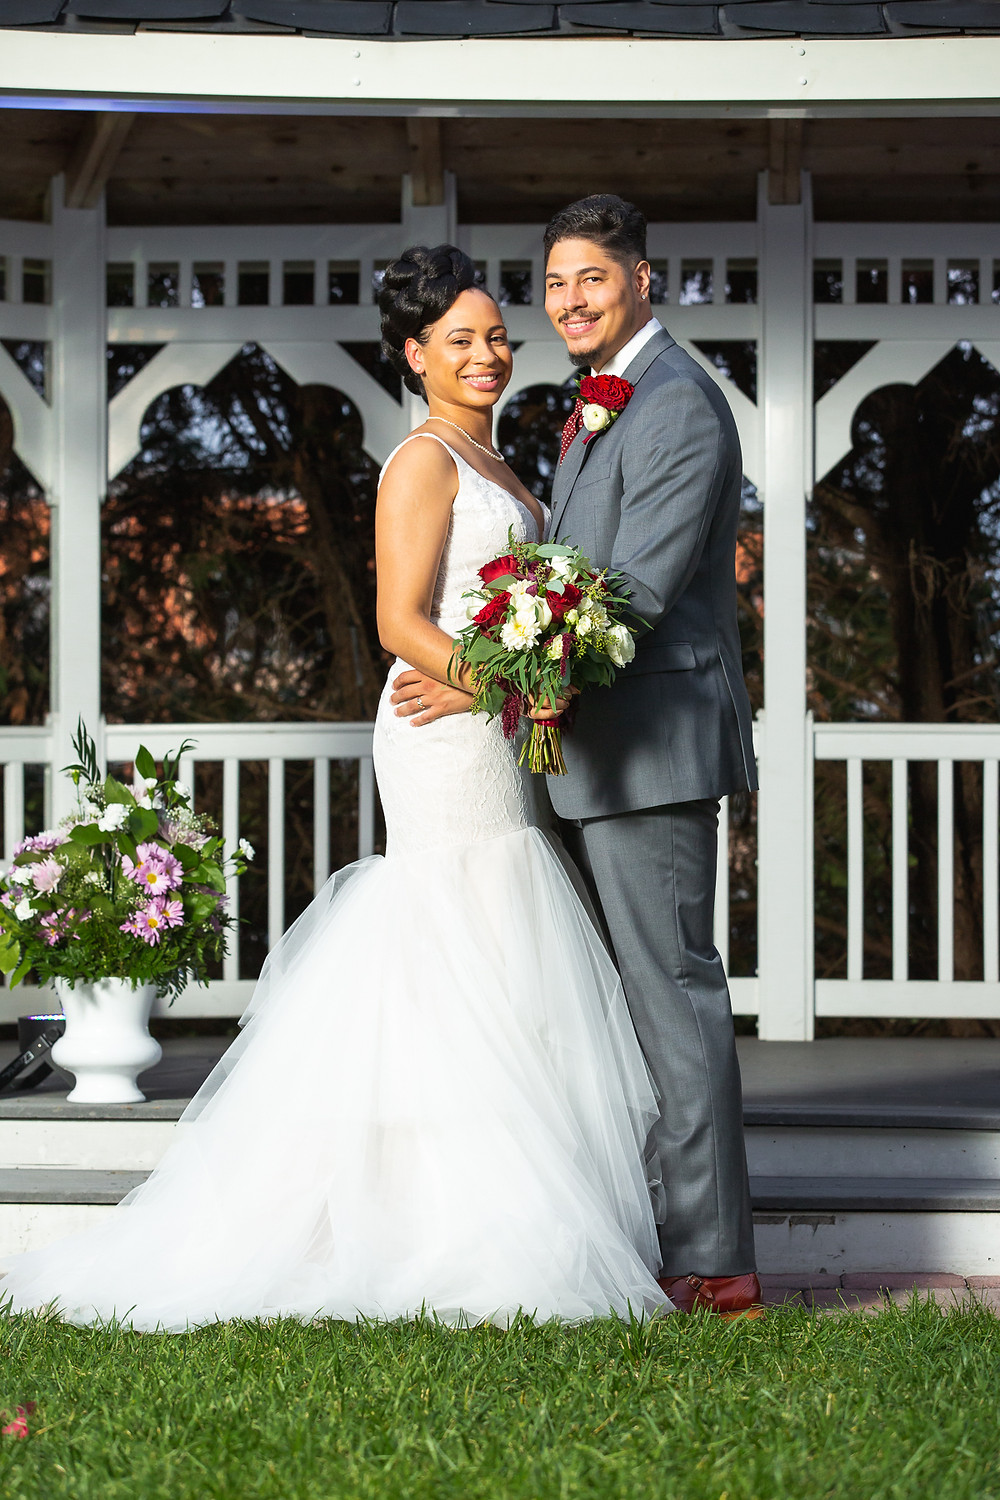 Bride and groom taking a classic wedding portrait after the wedding ceremony at Martin's Crosswinds in Greenbelt, Maryland.